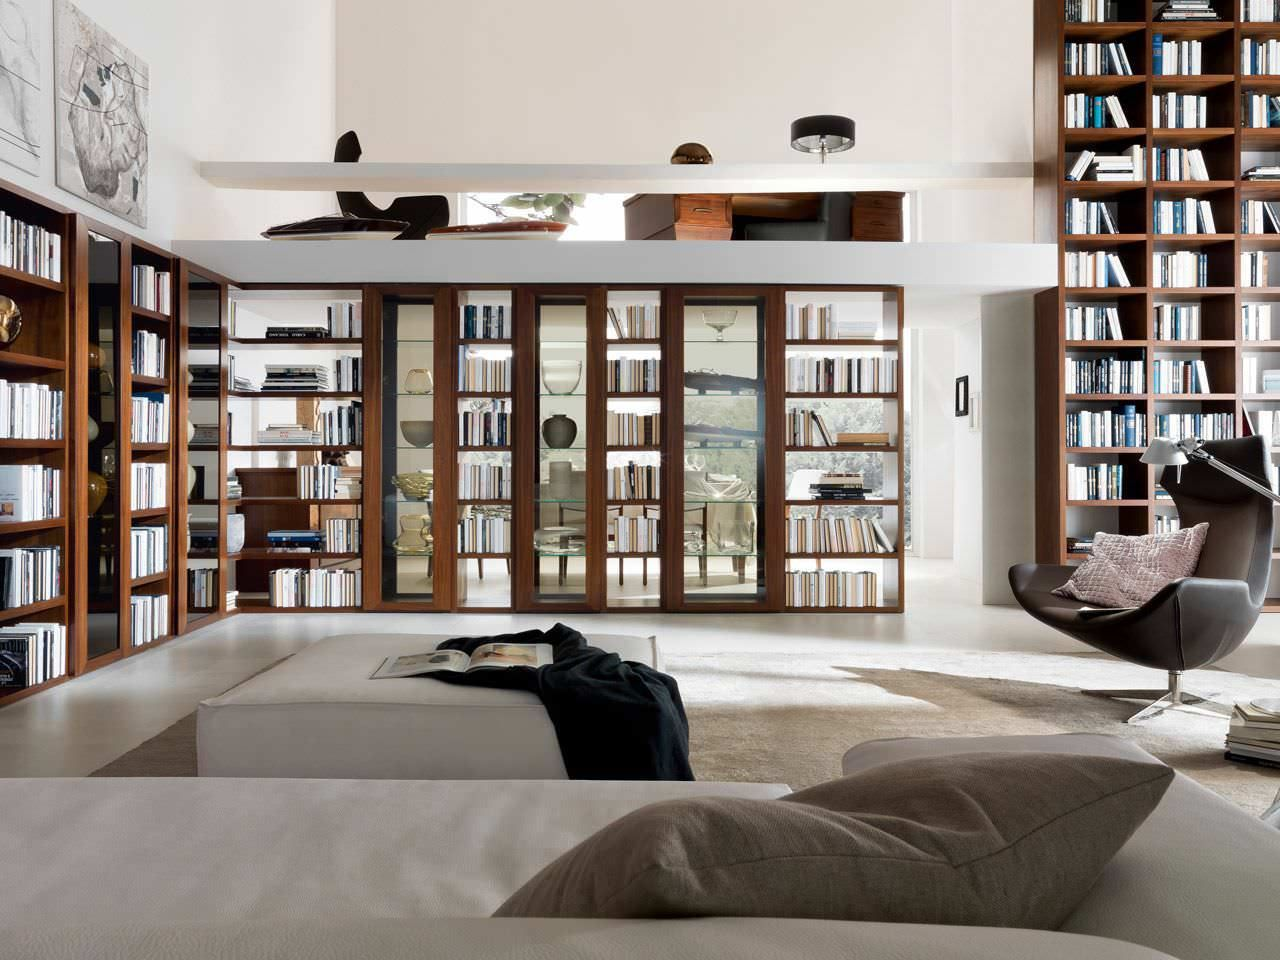 Home library furniture amazing white home library design for Amazing interior design ideas